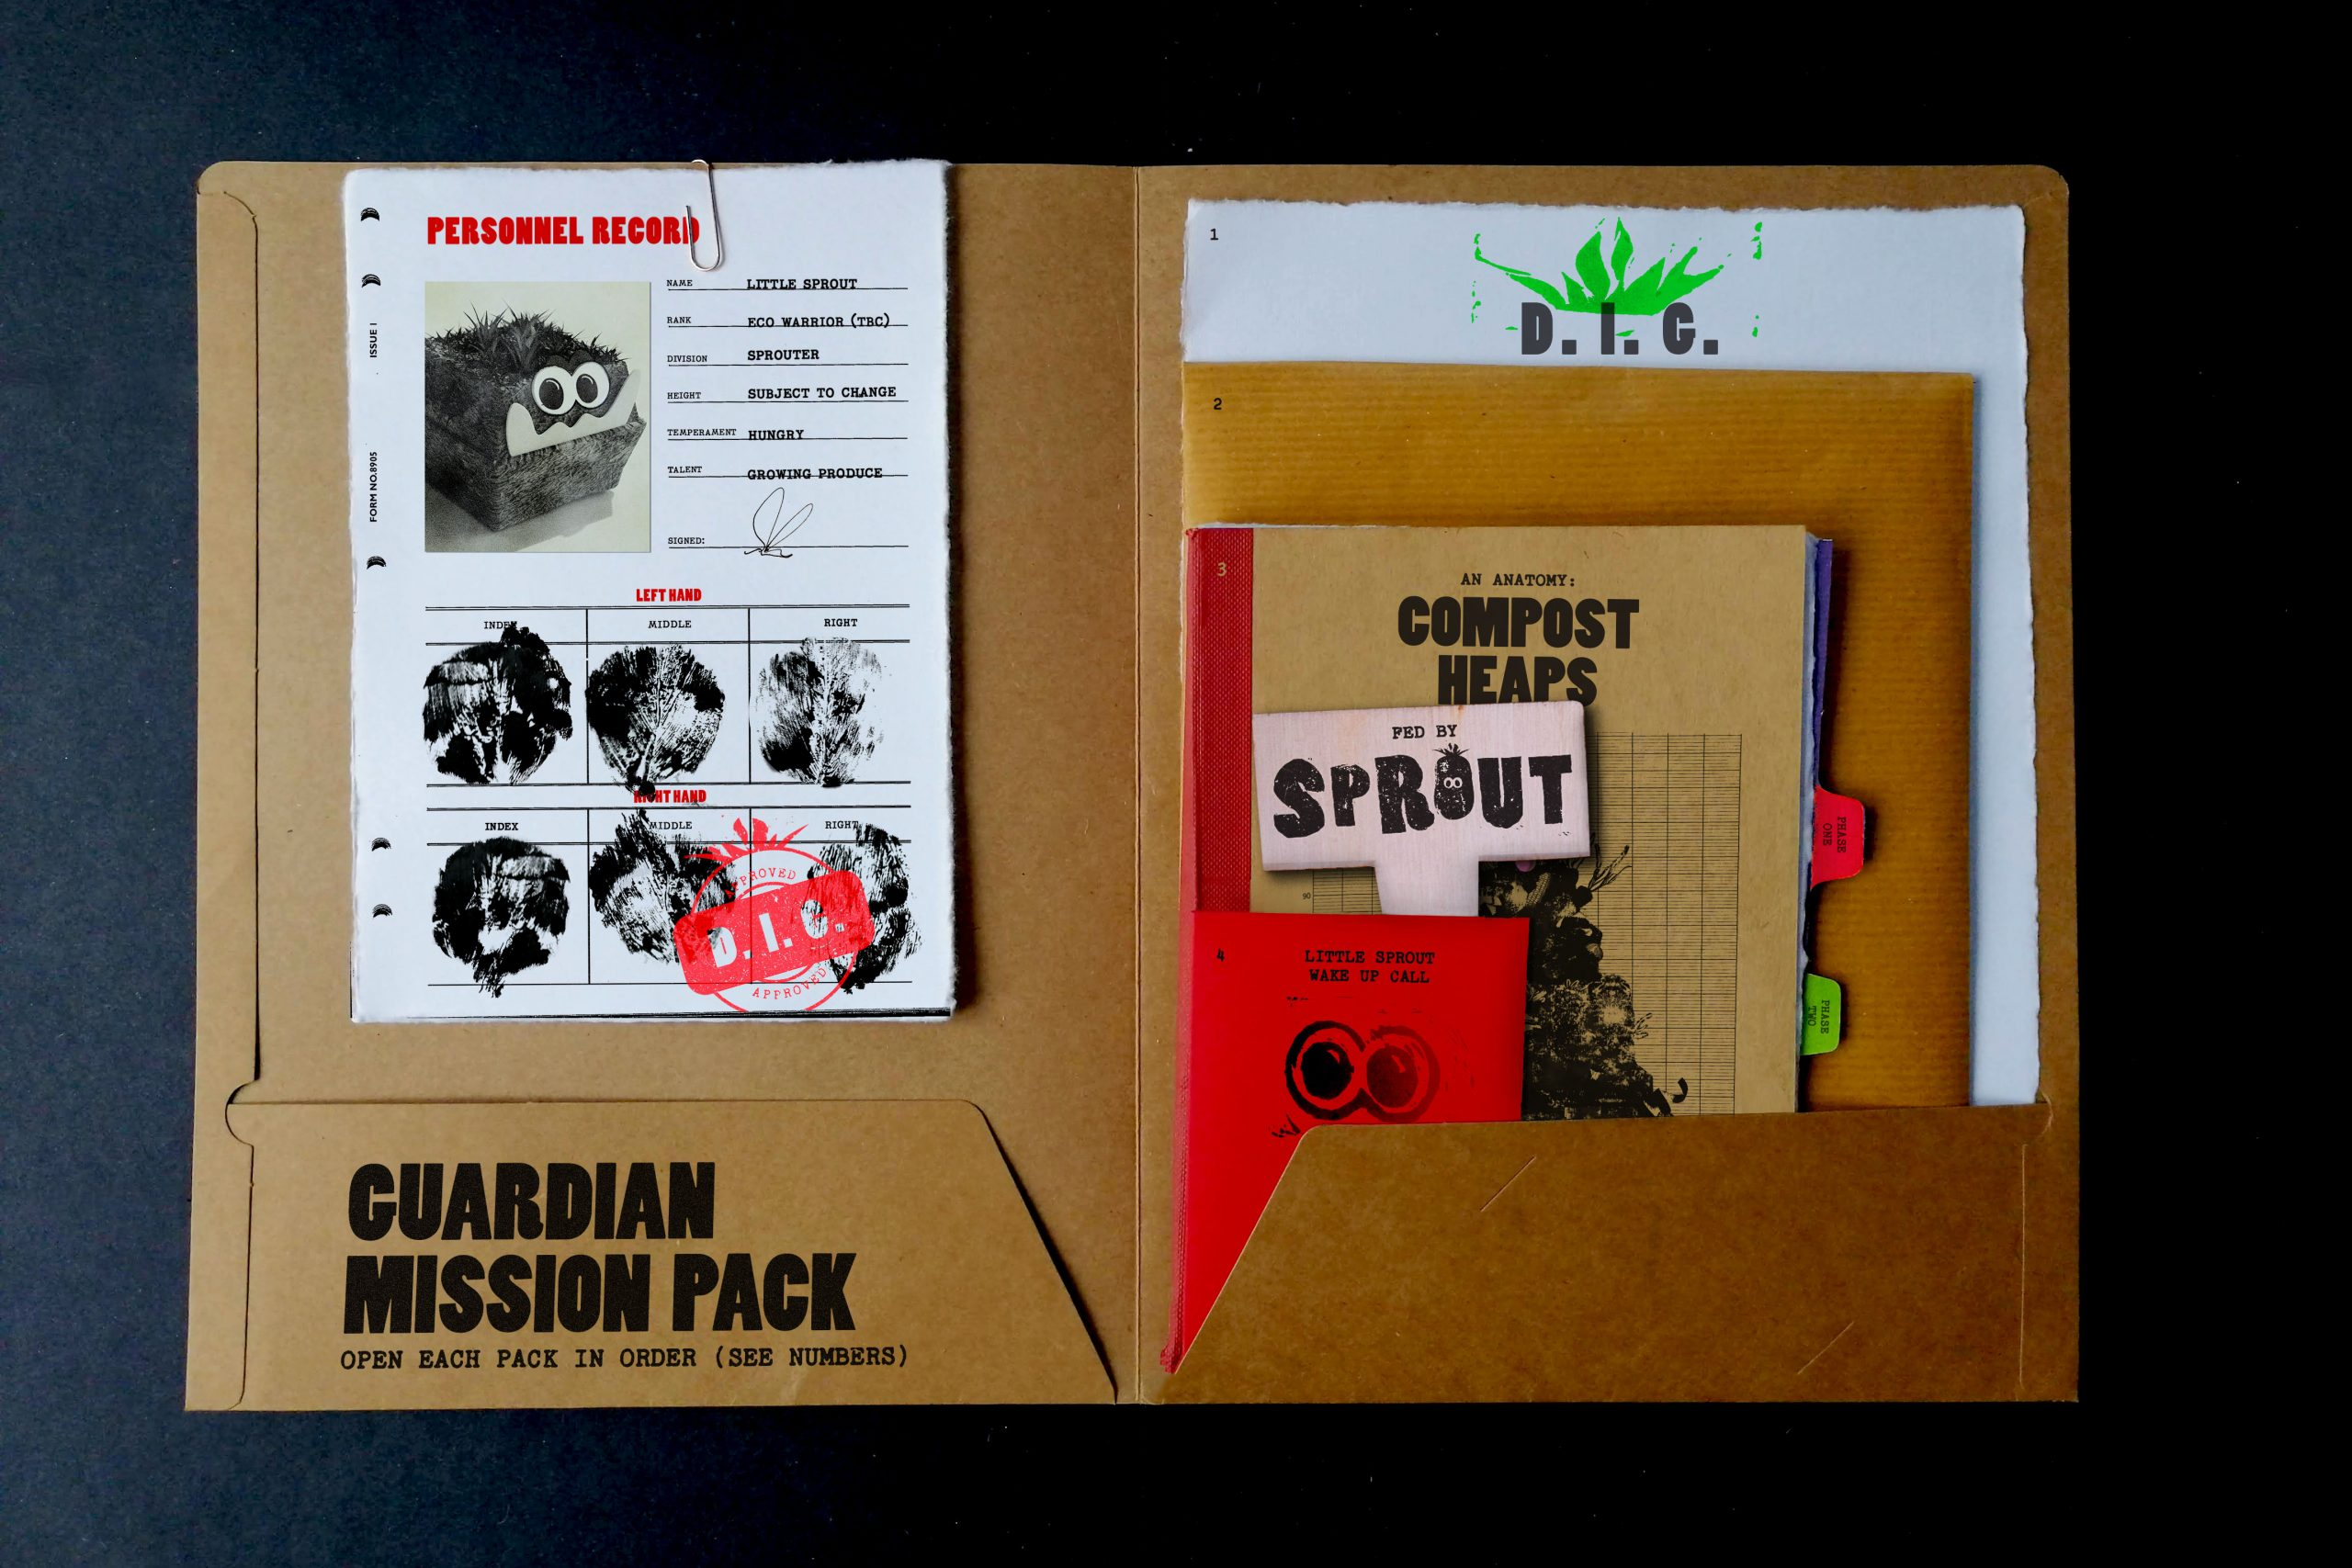 Collection of Sprout components